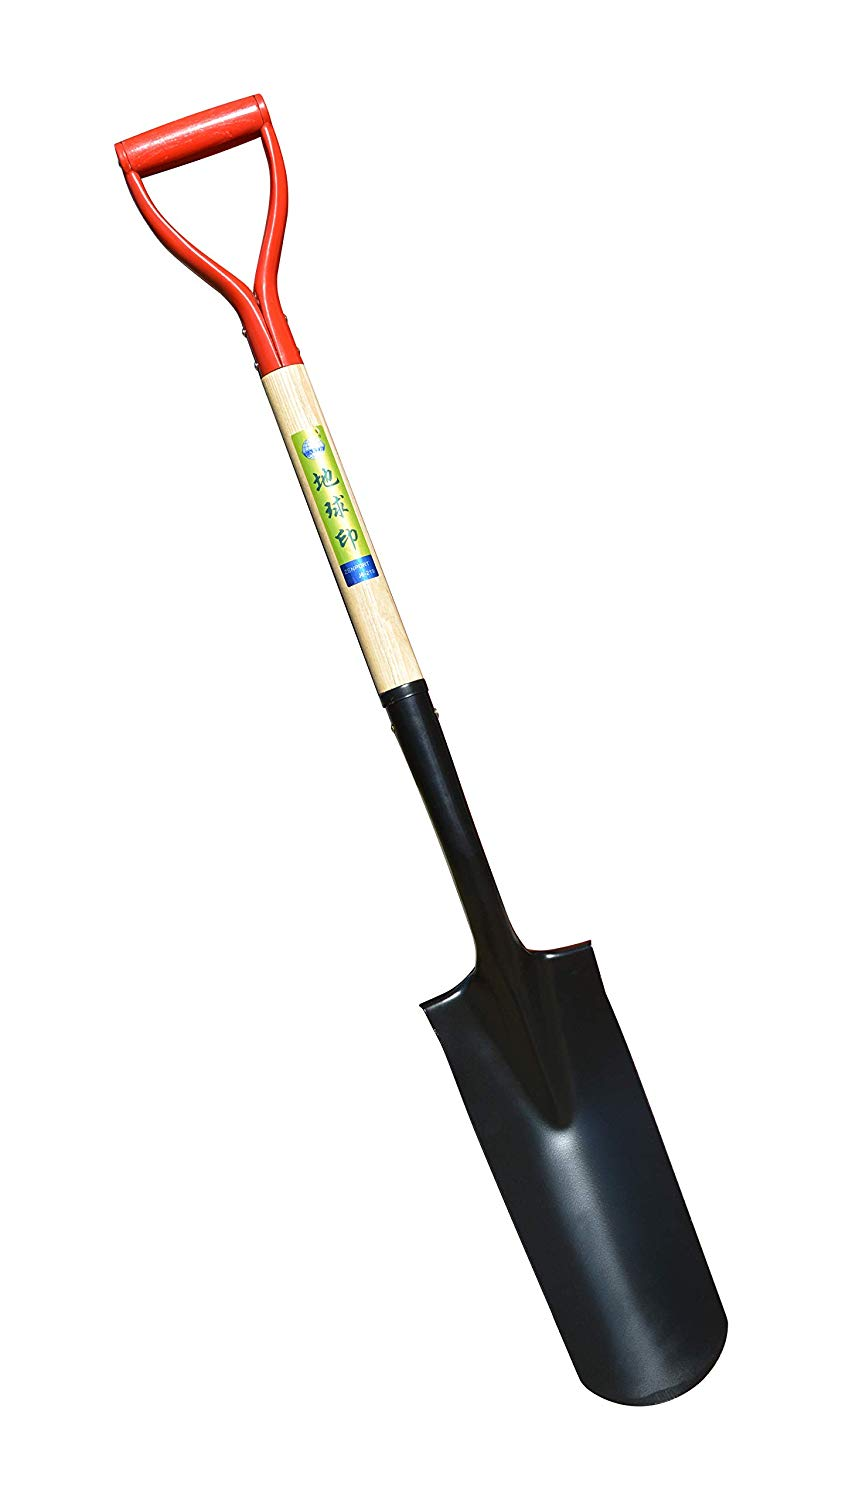 Zenport Irrigation Spade J6-219 with 14.5-inch Blade, Wood Handle